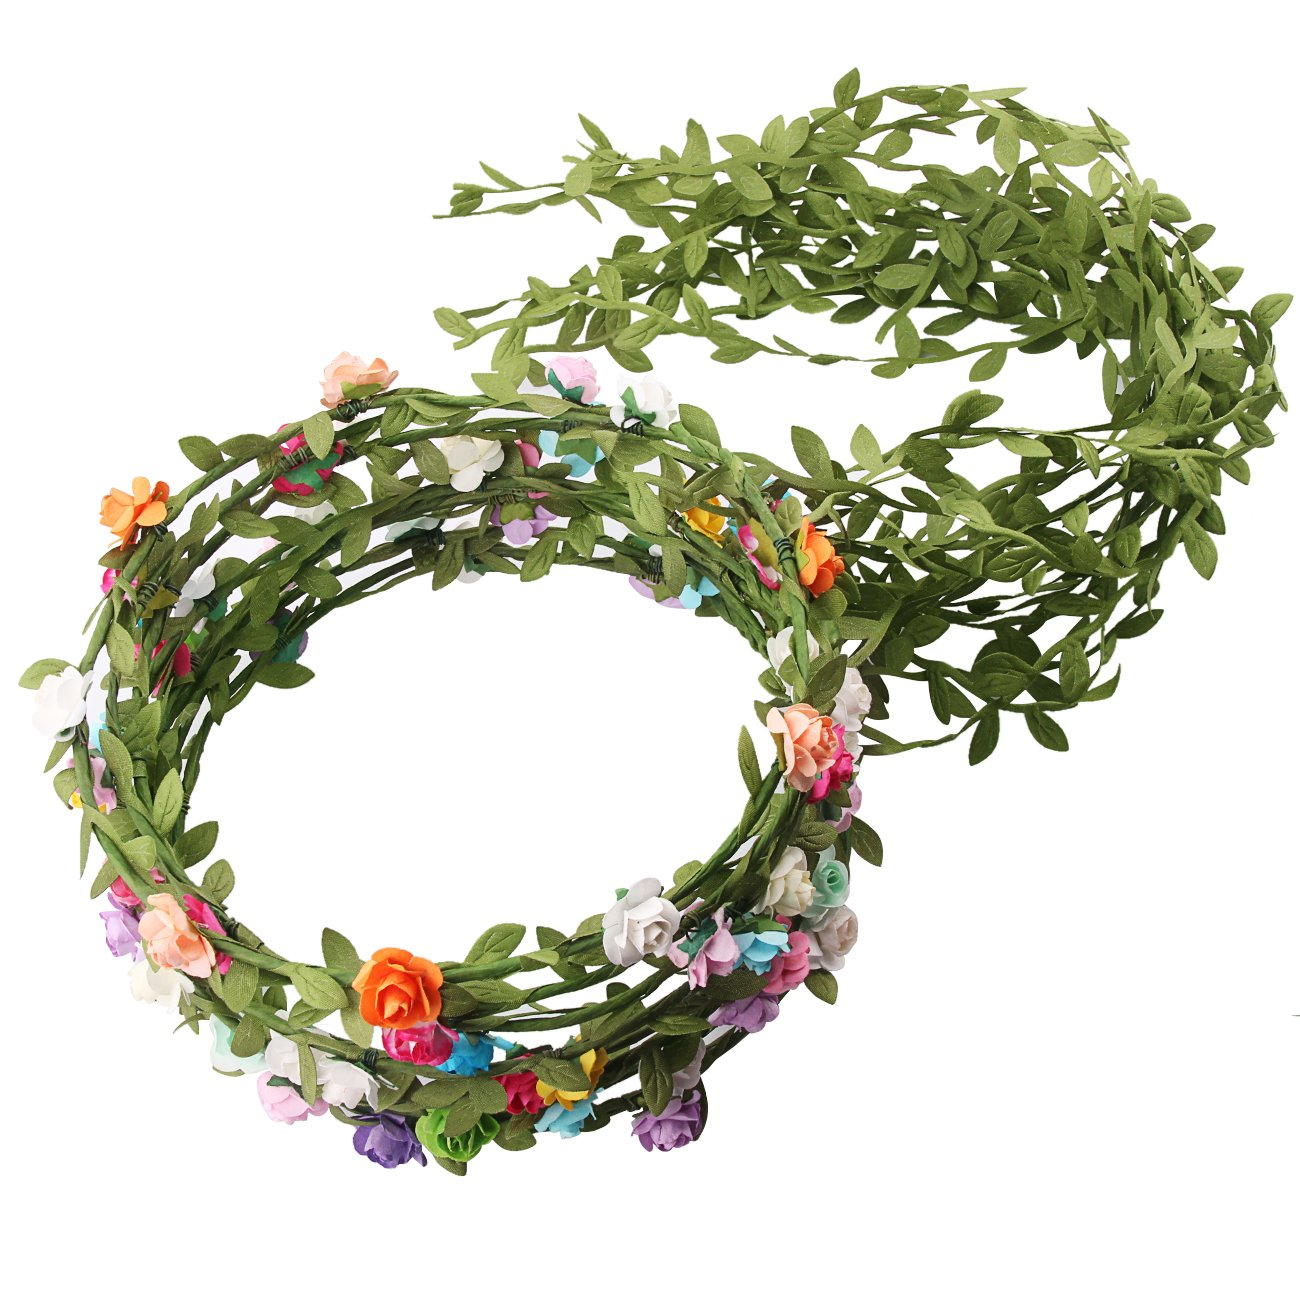 Candygirl 12pcs girl fashion bohemian flower crown floral garland candygirl 12pcs girl fashion bohemian flower crown floral garland headbands for girls yiwu omer accessories co izmirmasajfo